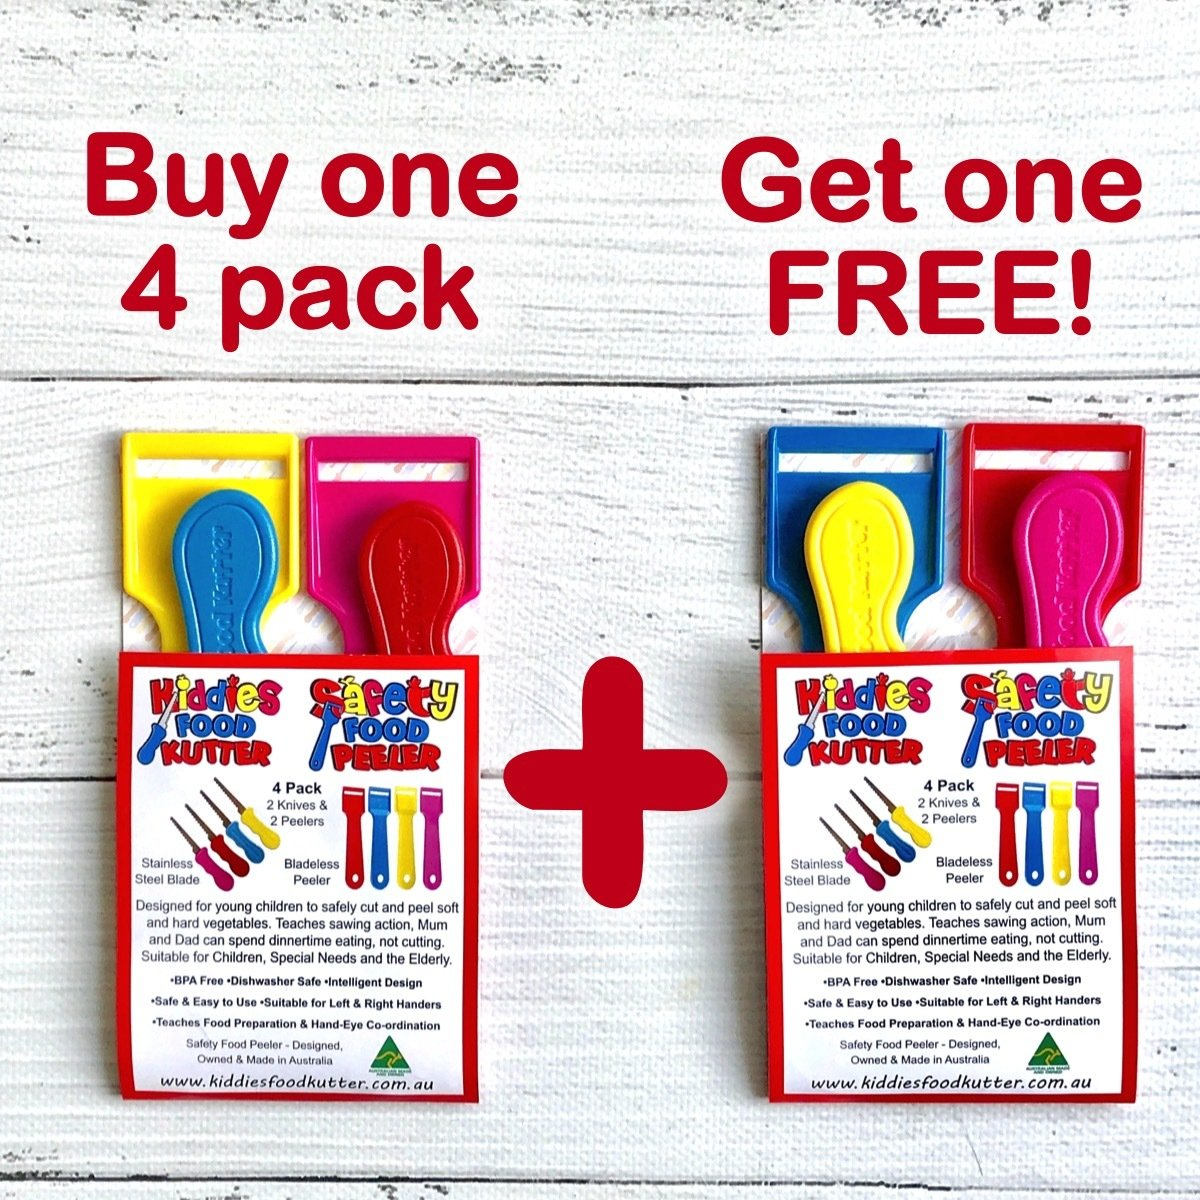 * Xmas Promo * Buy 1 x 4 Pack get another FREE * Xmas Promo BOGOF - 4 Pack